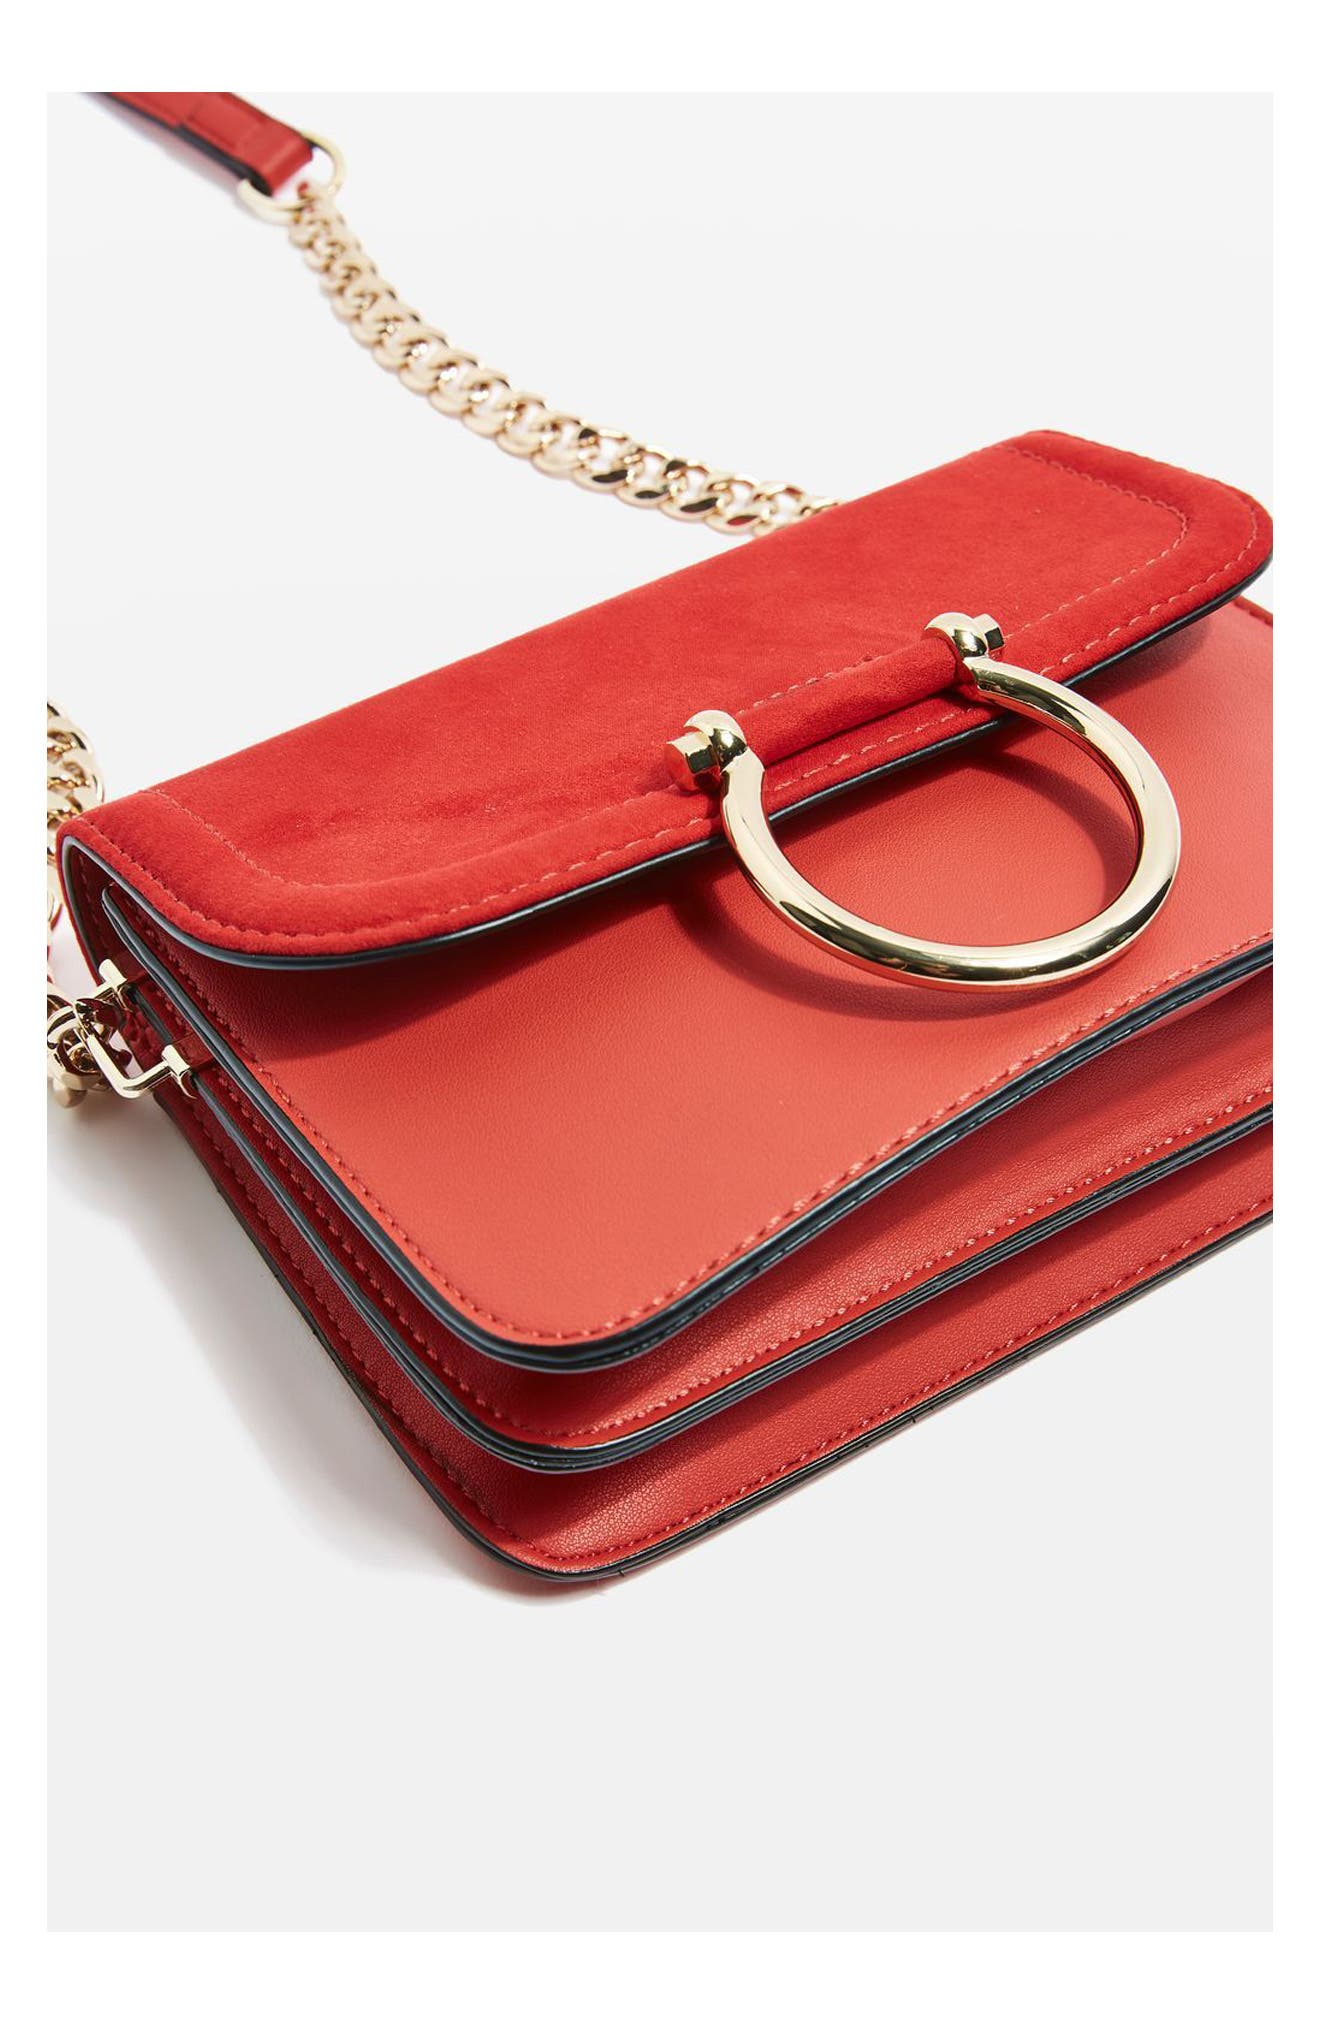 Remy Trophy Faux Leather Crossbody Bag,                             Alternate thumbnail 4, color,                             600